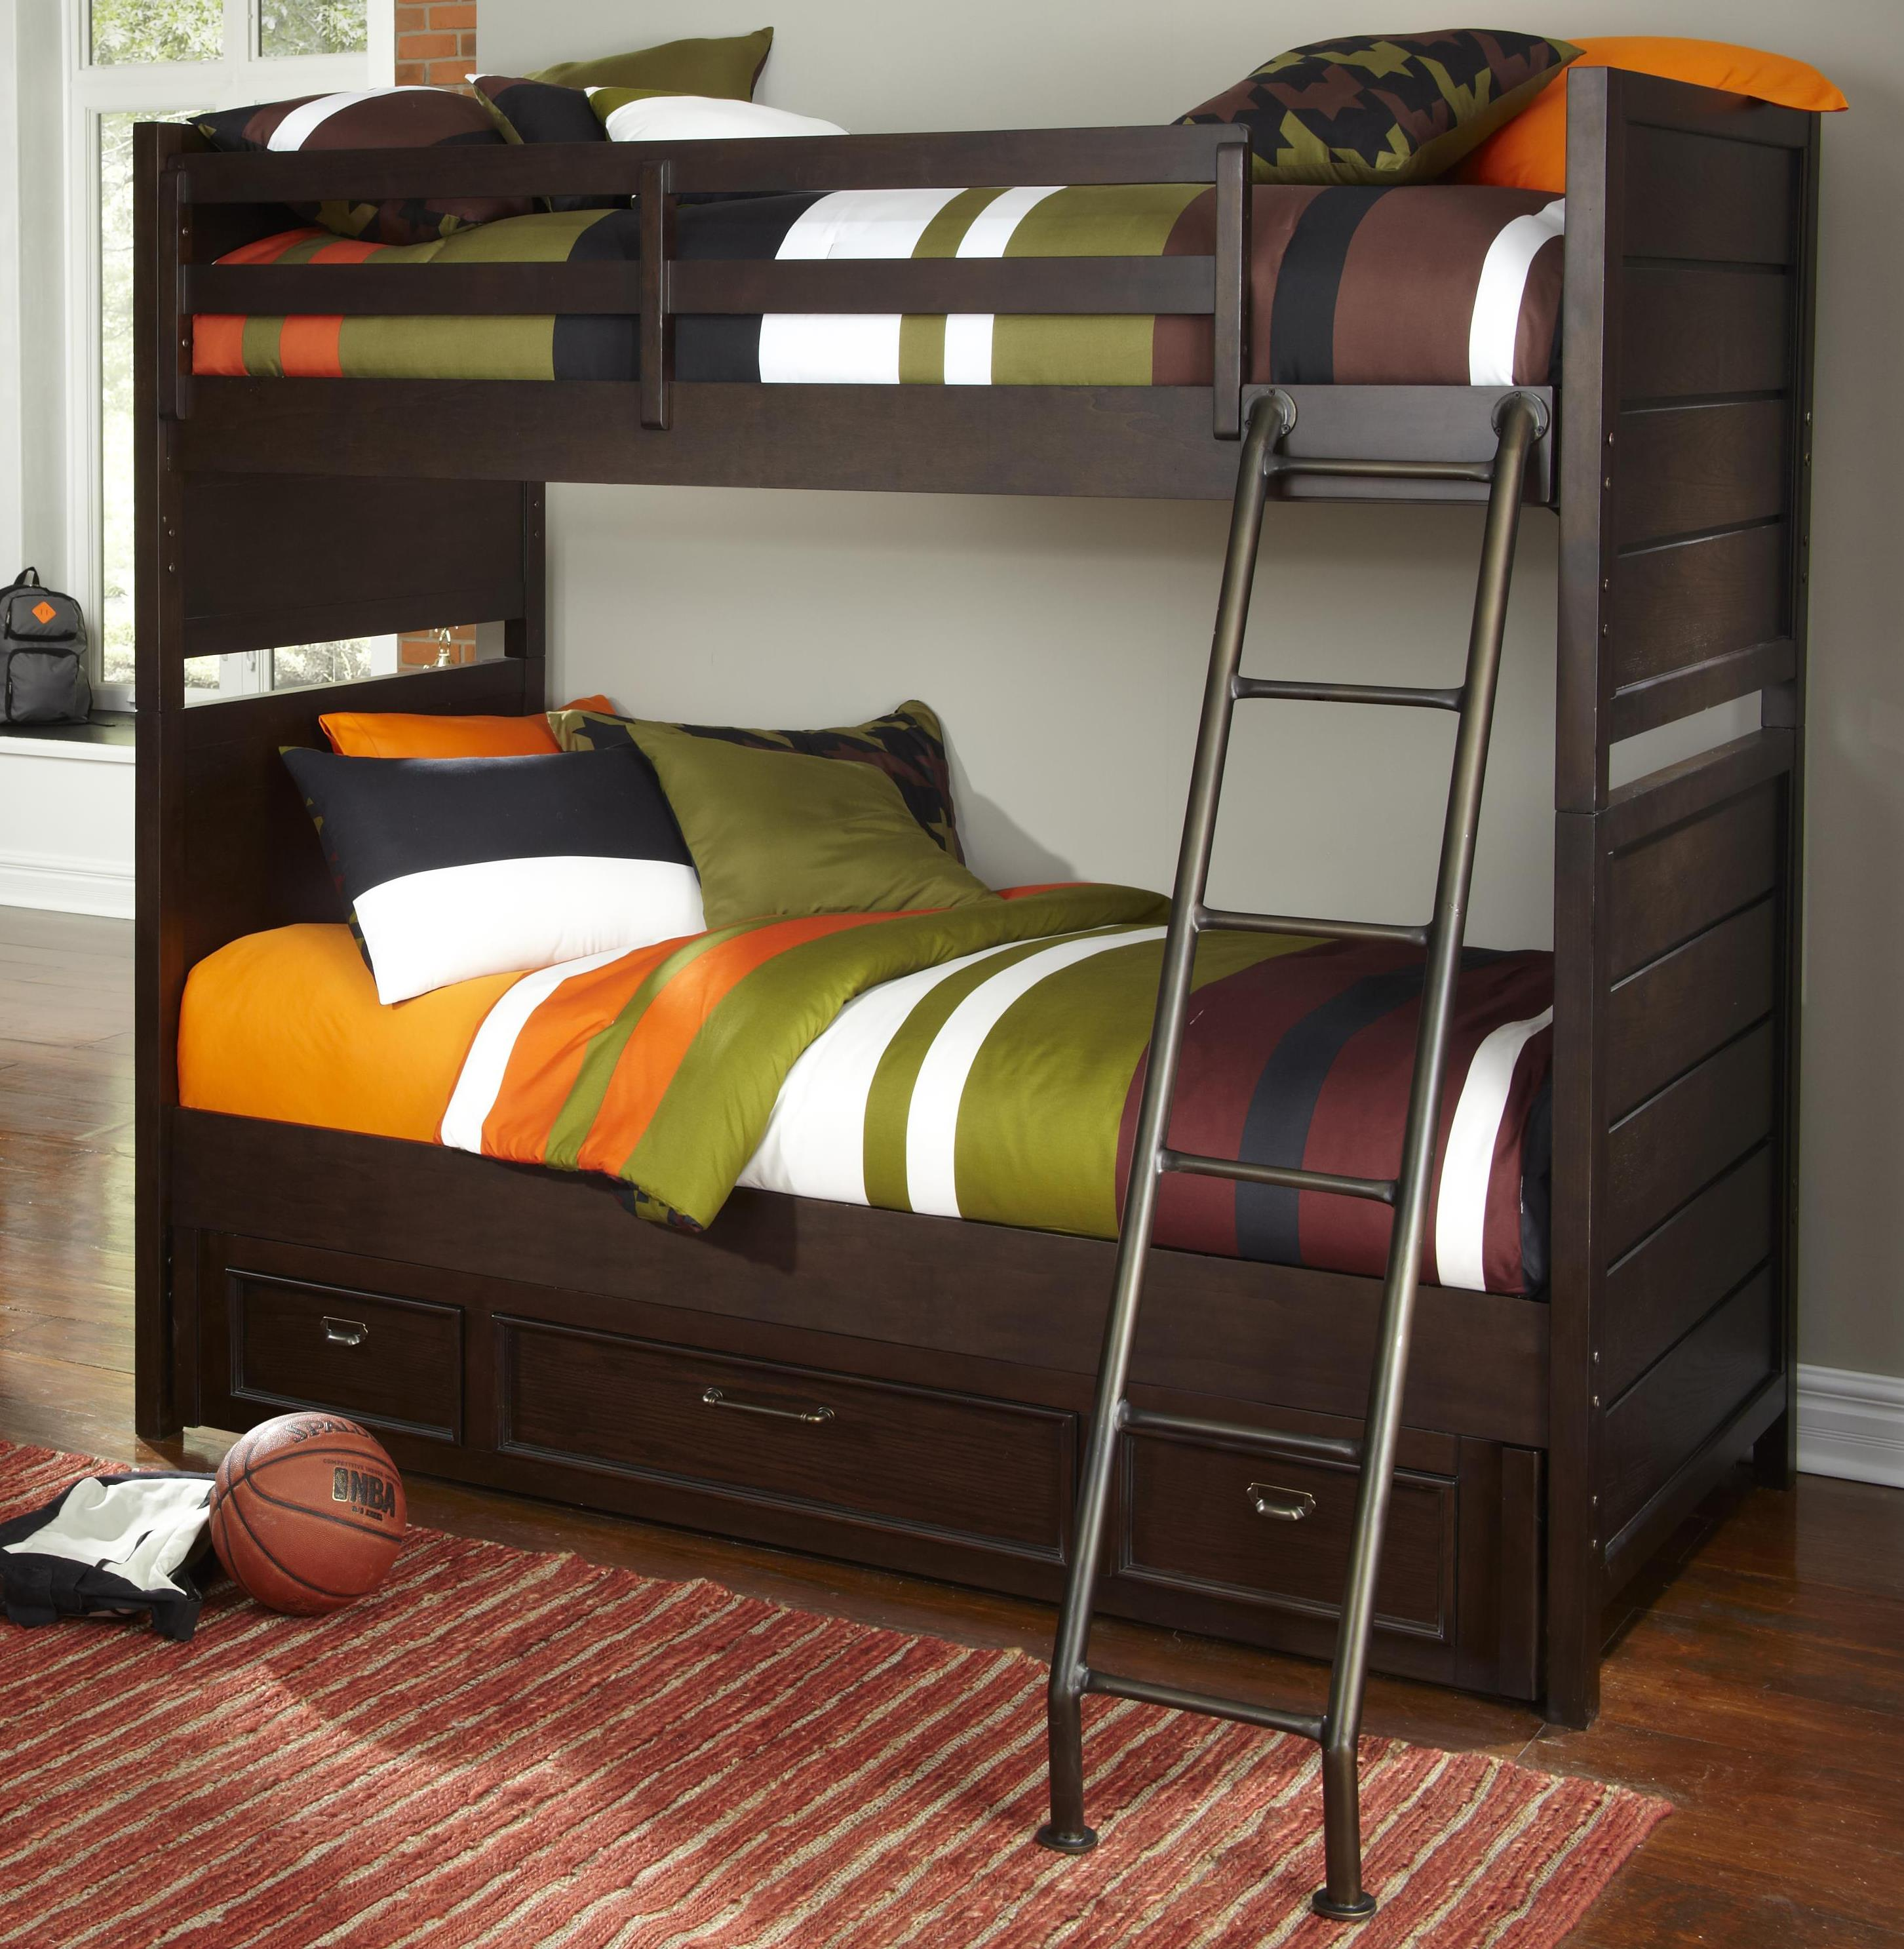 Kidz Gear Mason Twin over Twin Storage Bunk Bed - Item Number: 8872-643+730+731+732